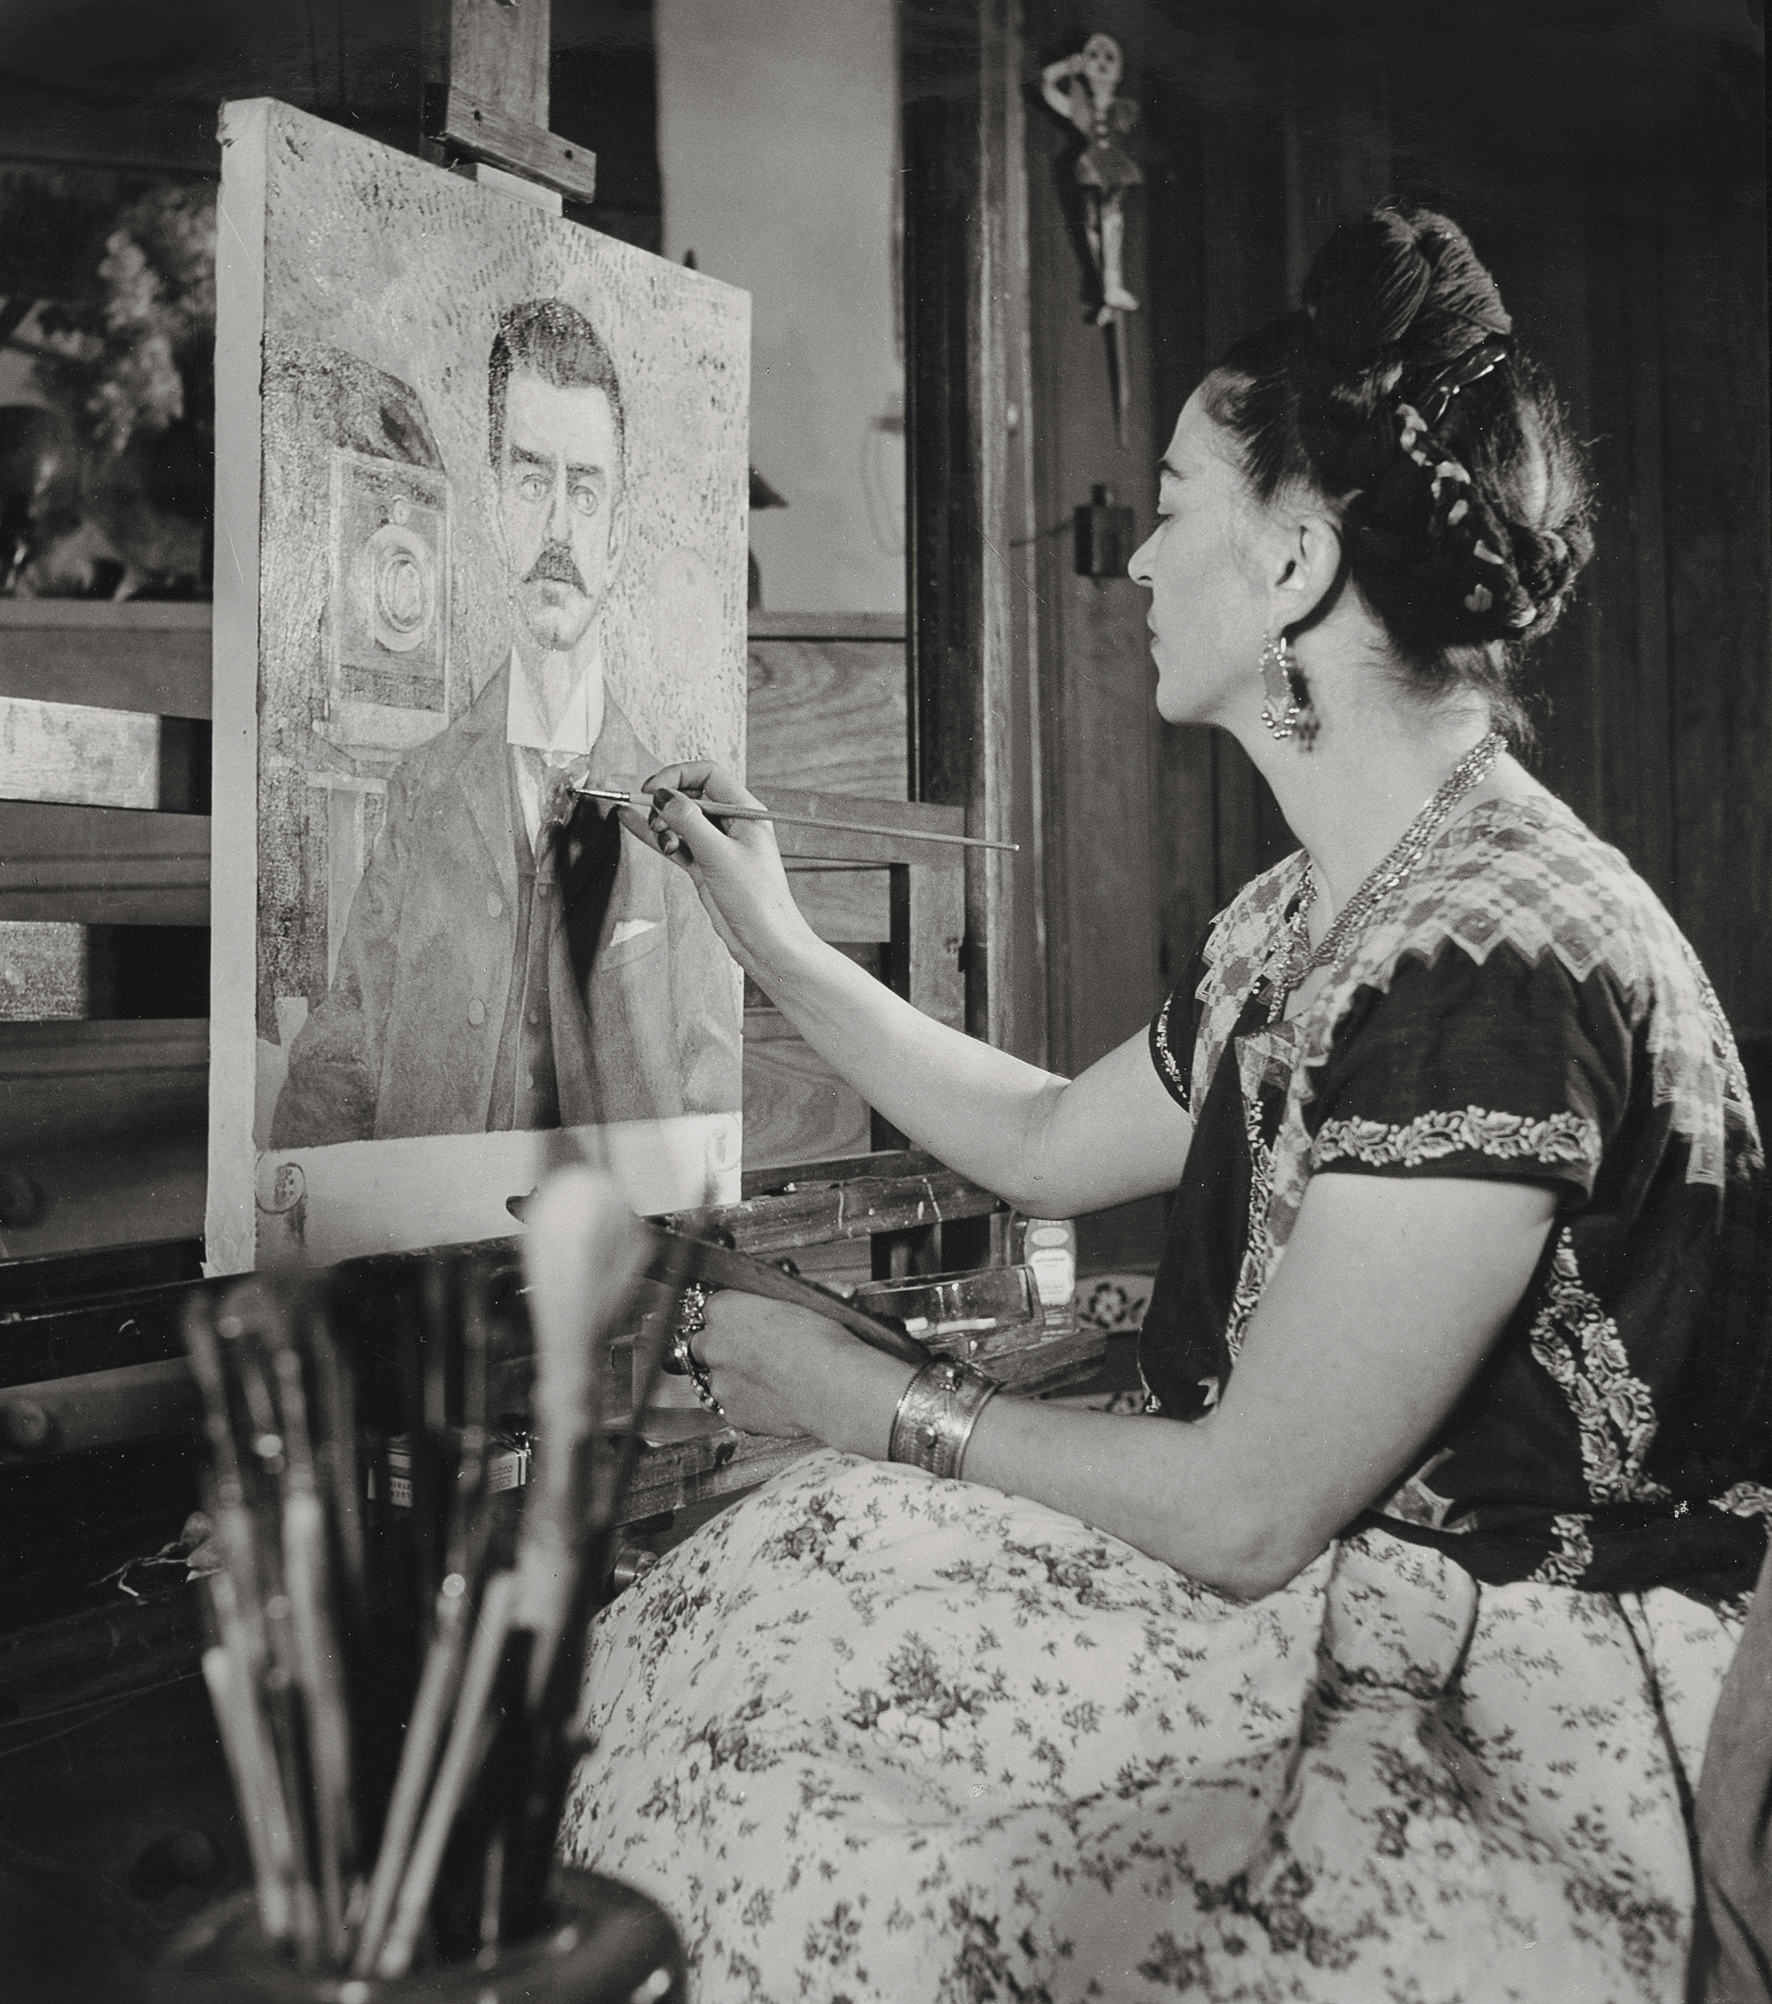 **Frida painting the portrait of her father**, by Gisèle Freund, 1951 © Frida Kahlo Museum